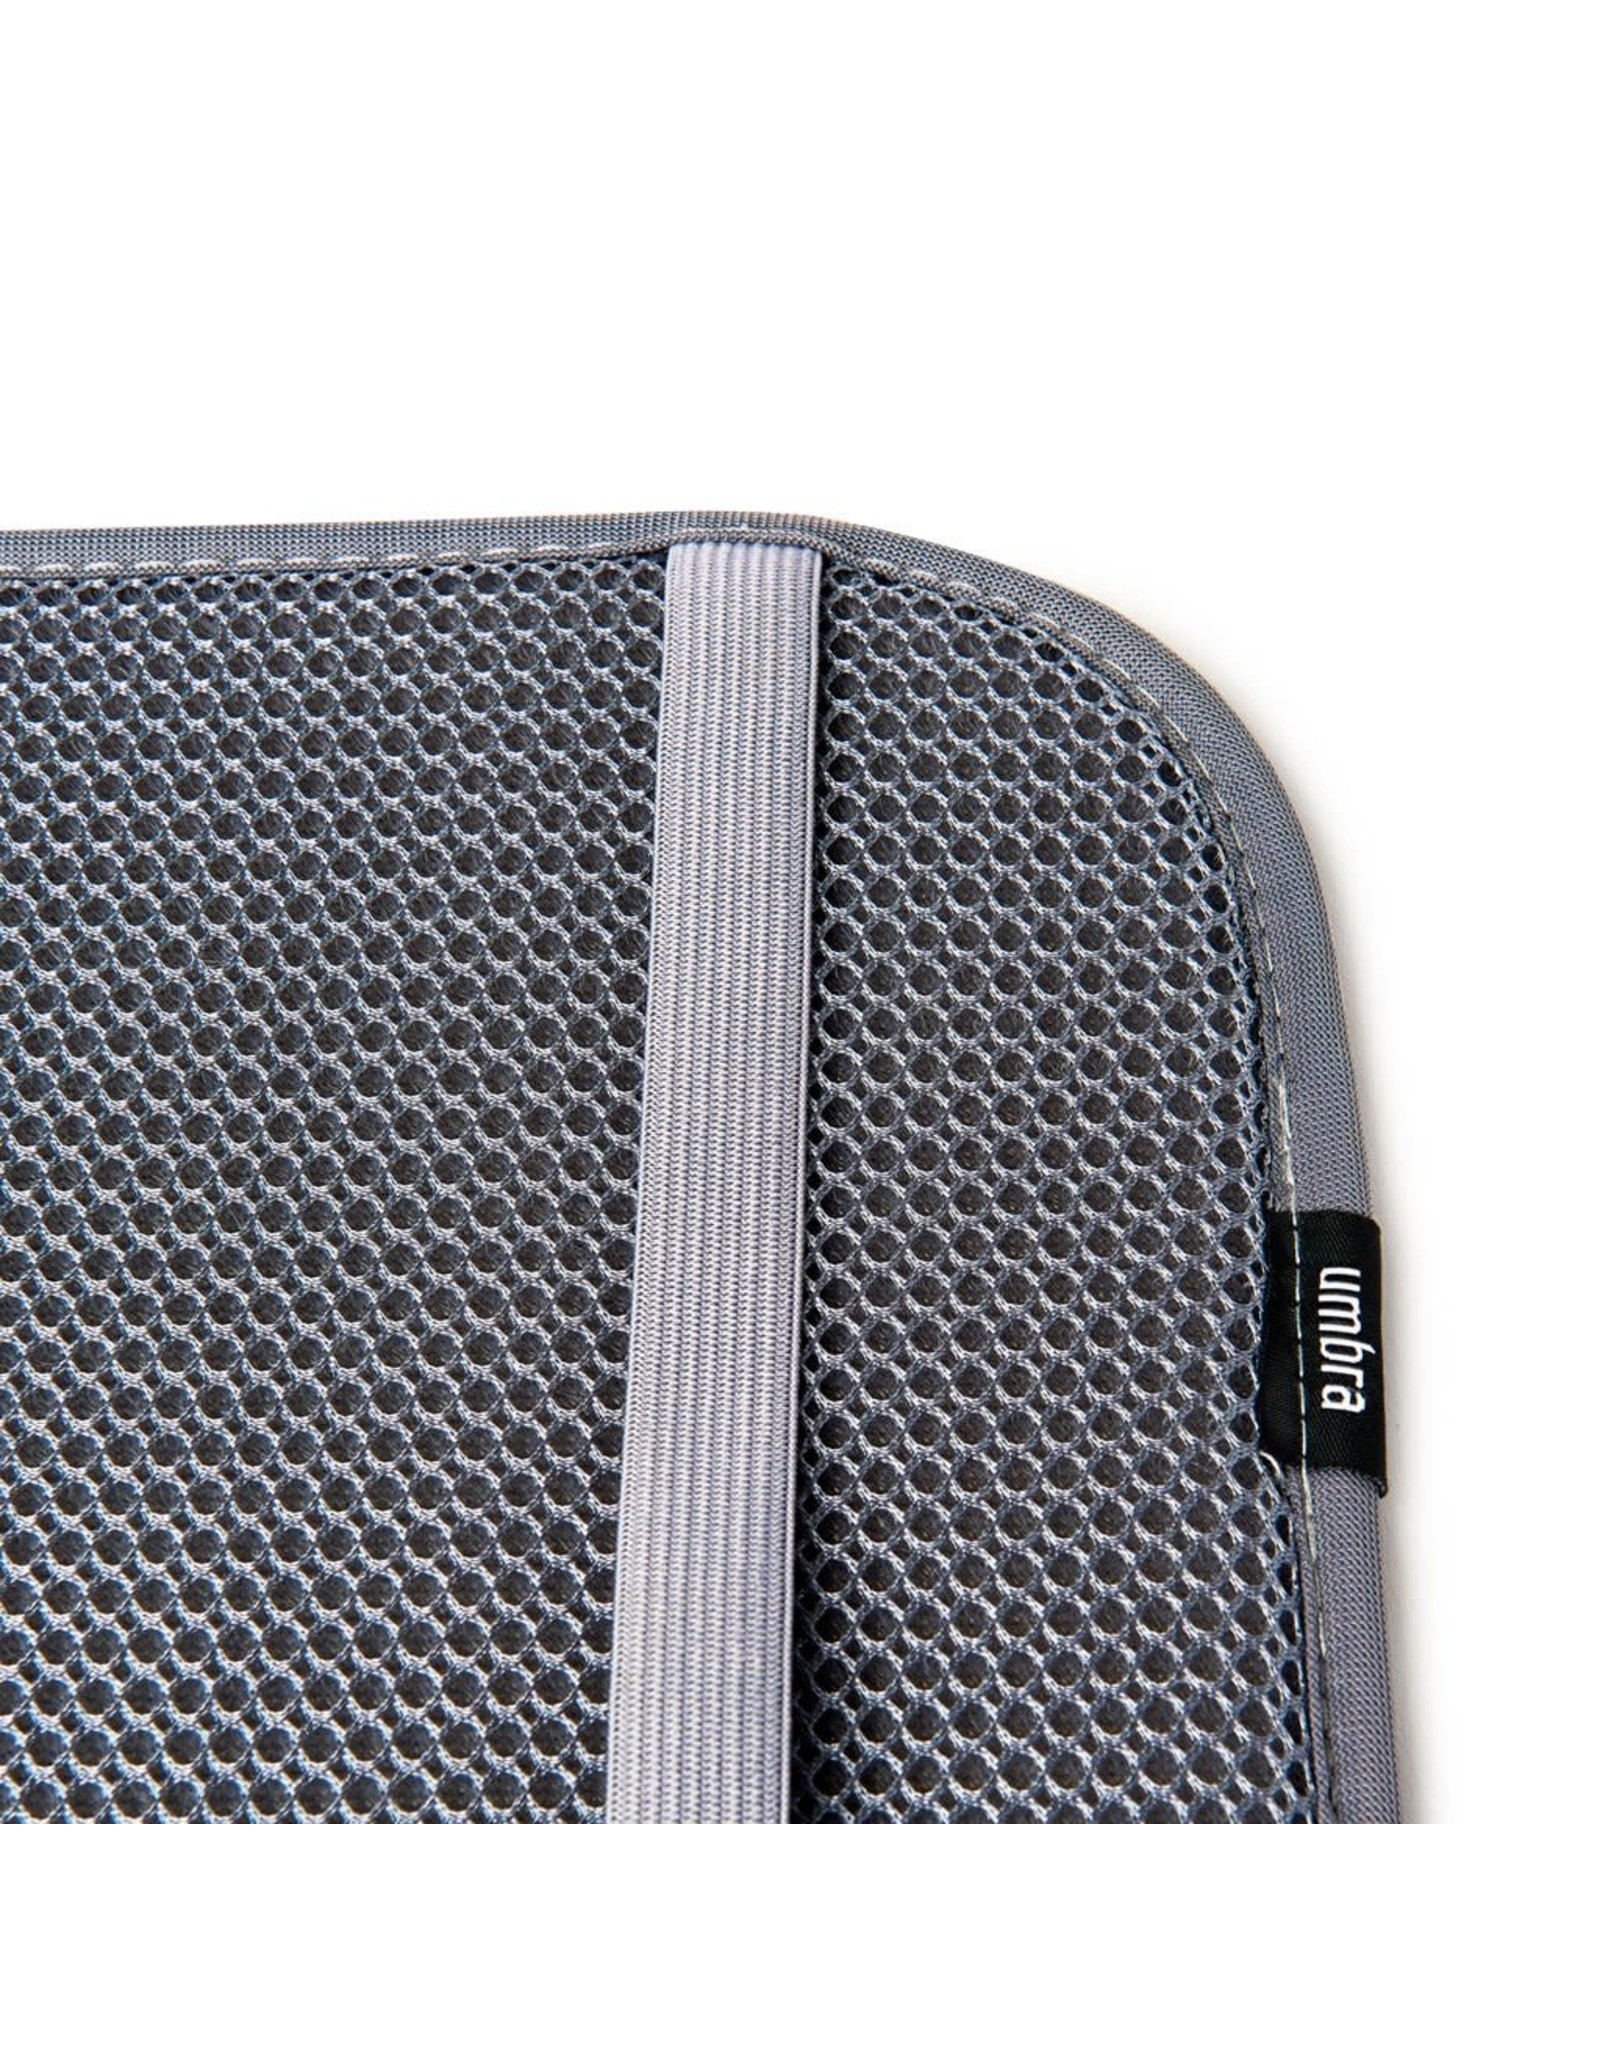 UDry Drying Mat Mini in Charcoal